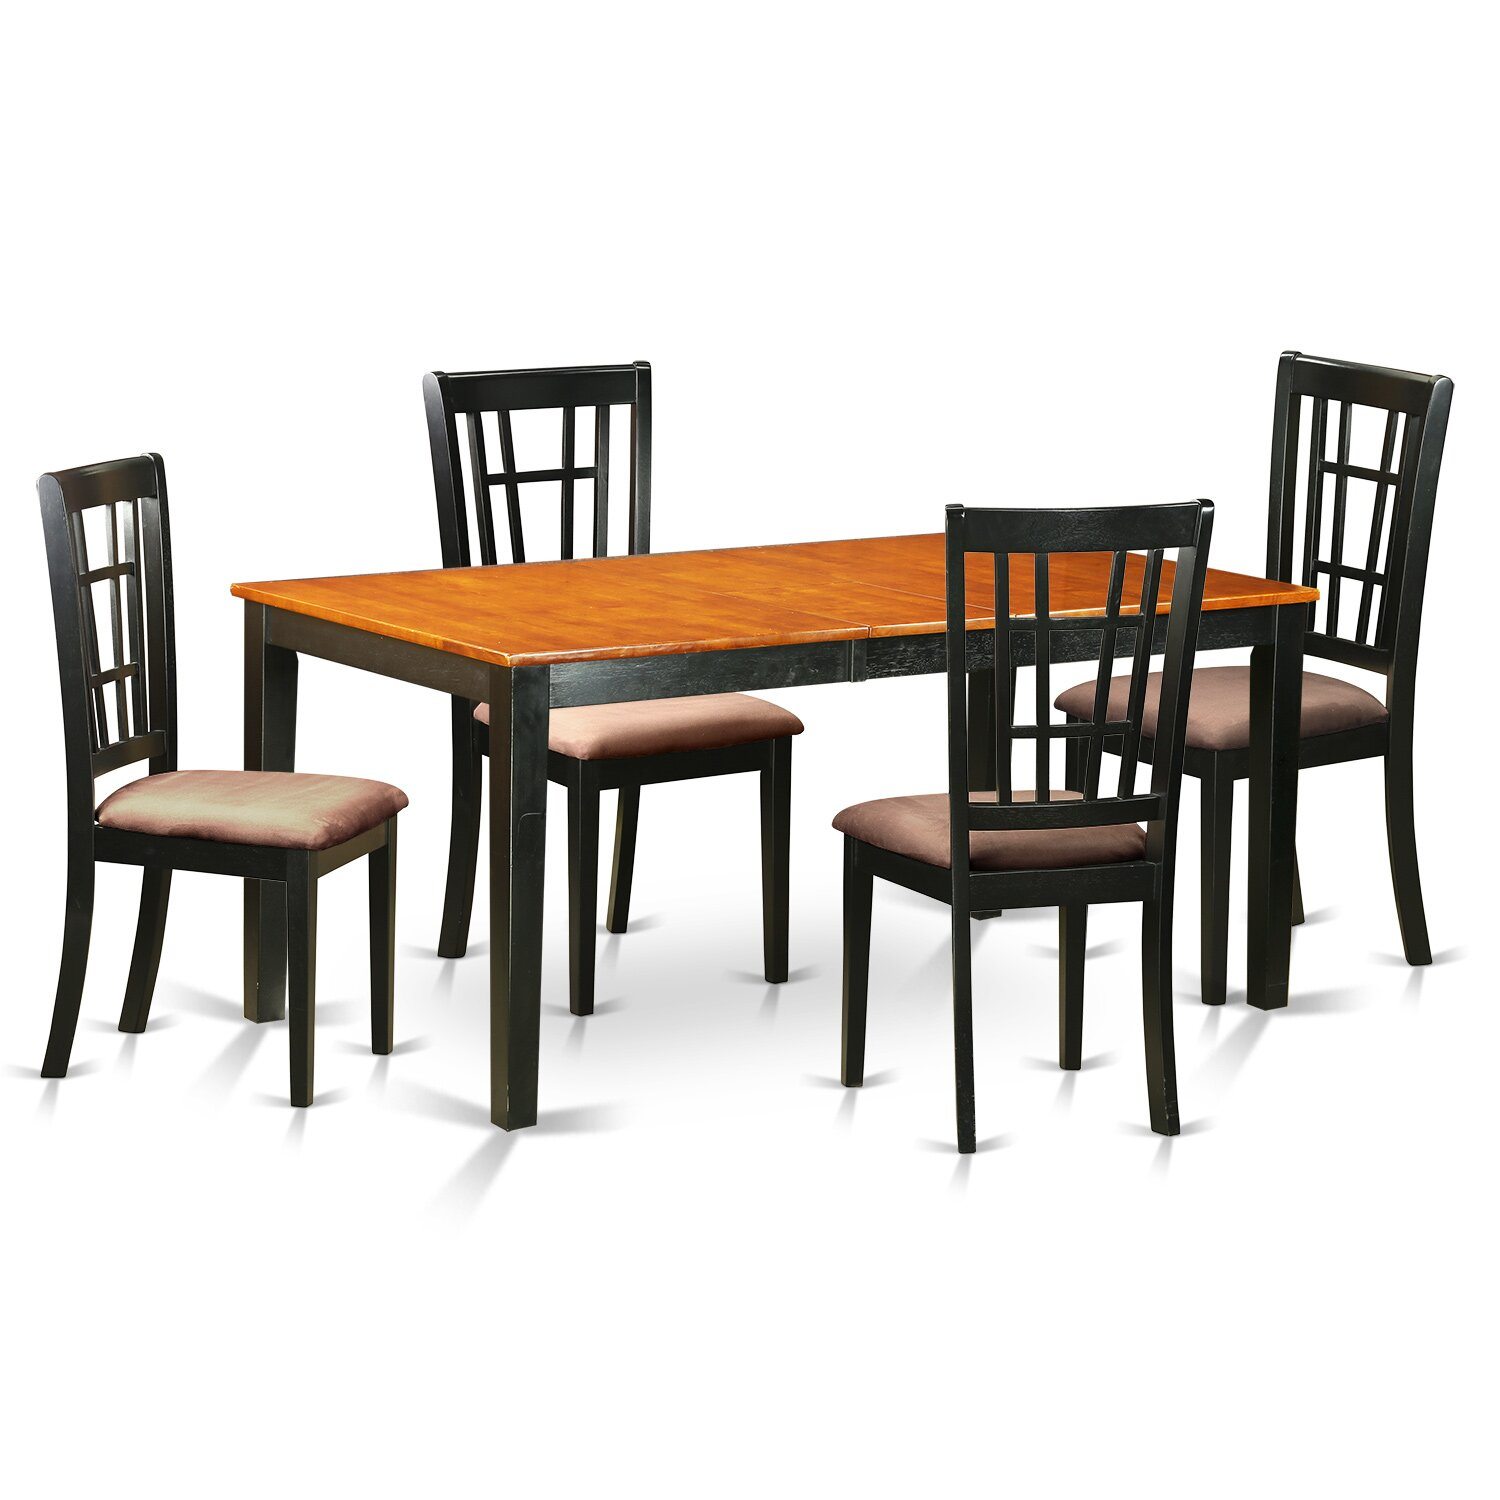 East West Furniture Henl7 Brn W 7 Piece Dining Table Set